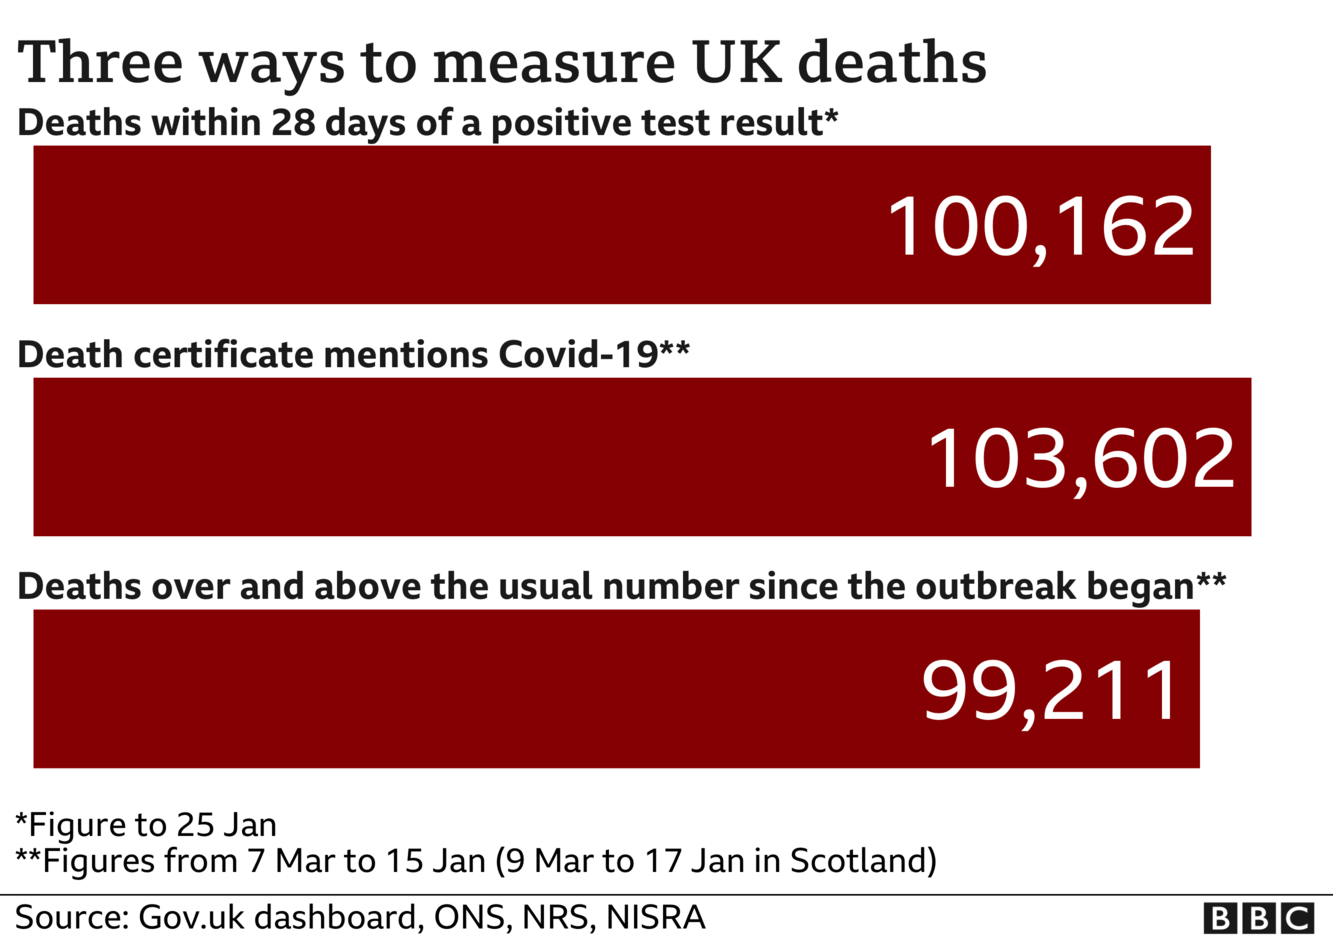 Graphic showing the ways of measuring UK deaths